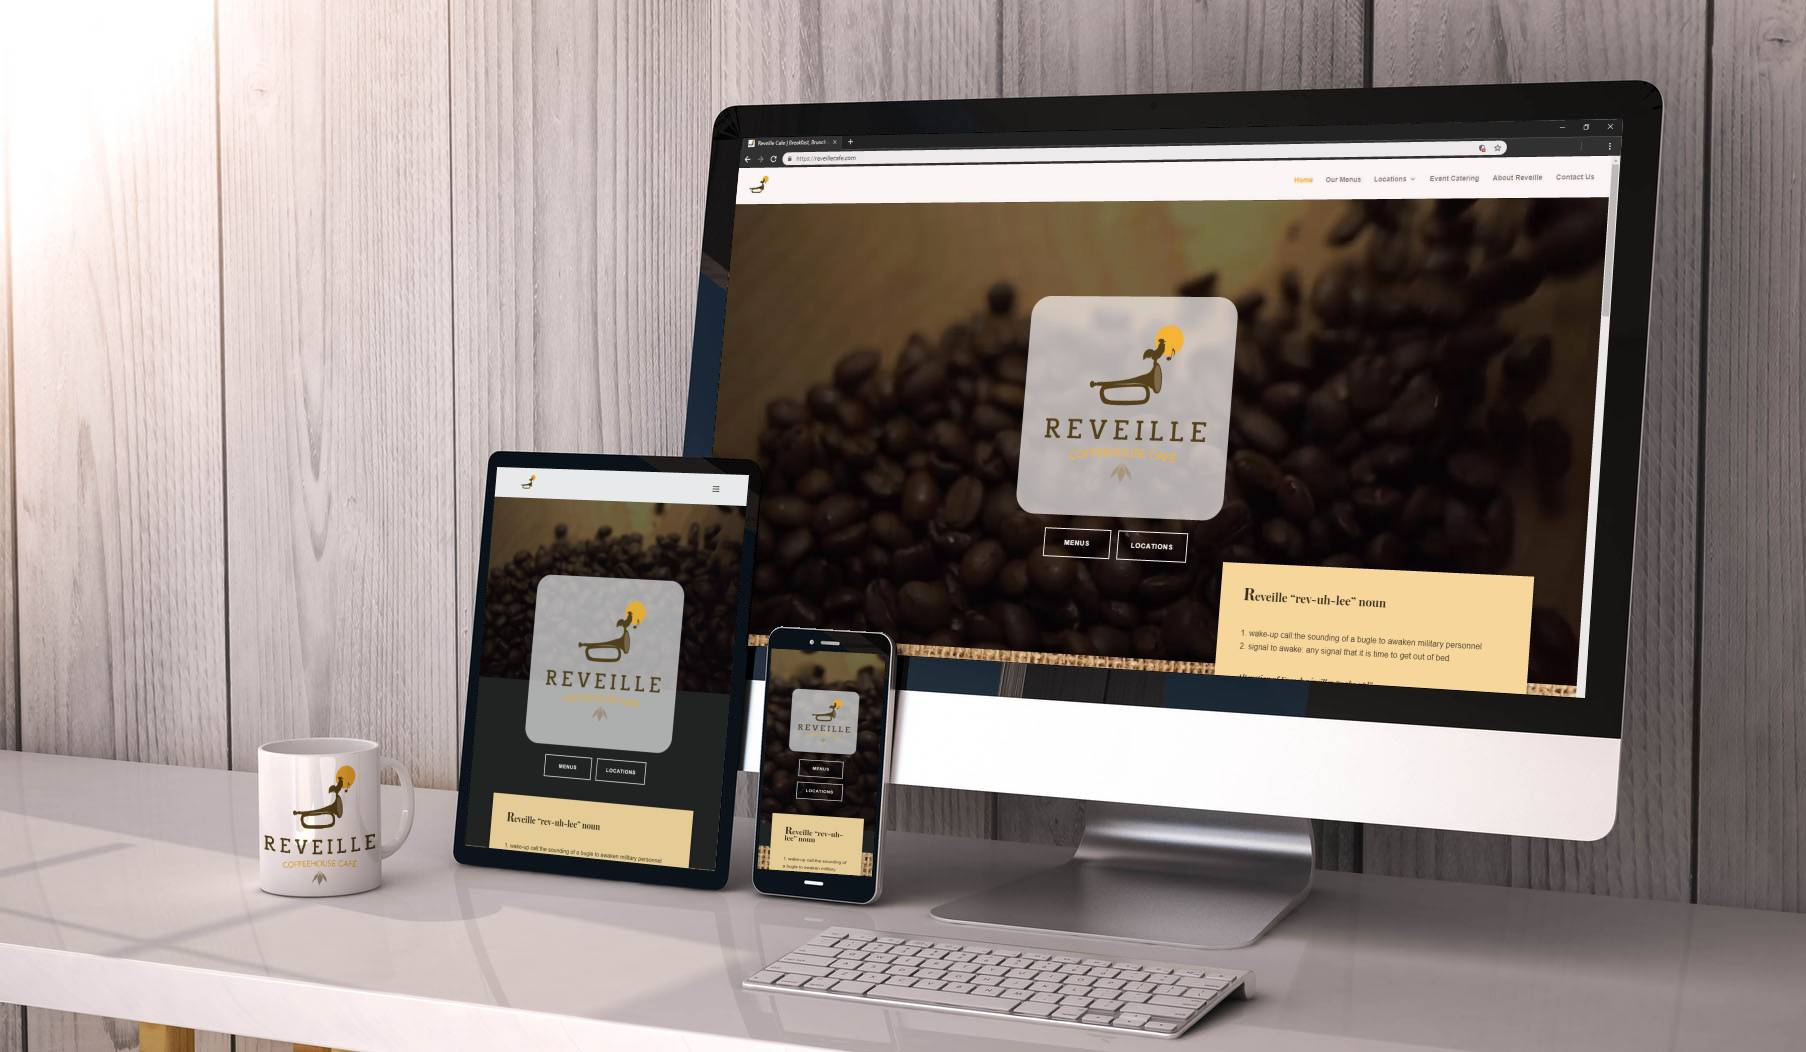 Reveille Cafe - New Website Design and Layout